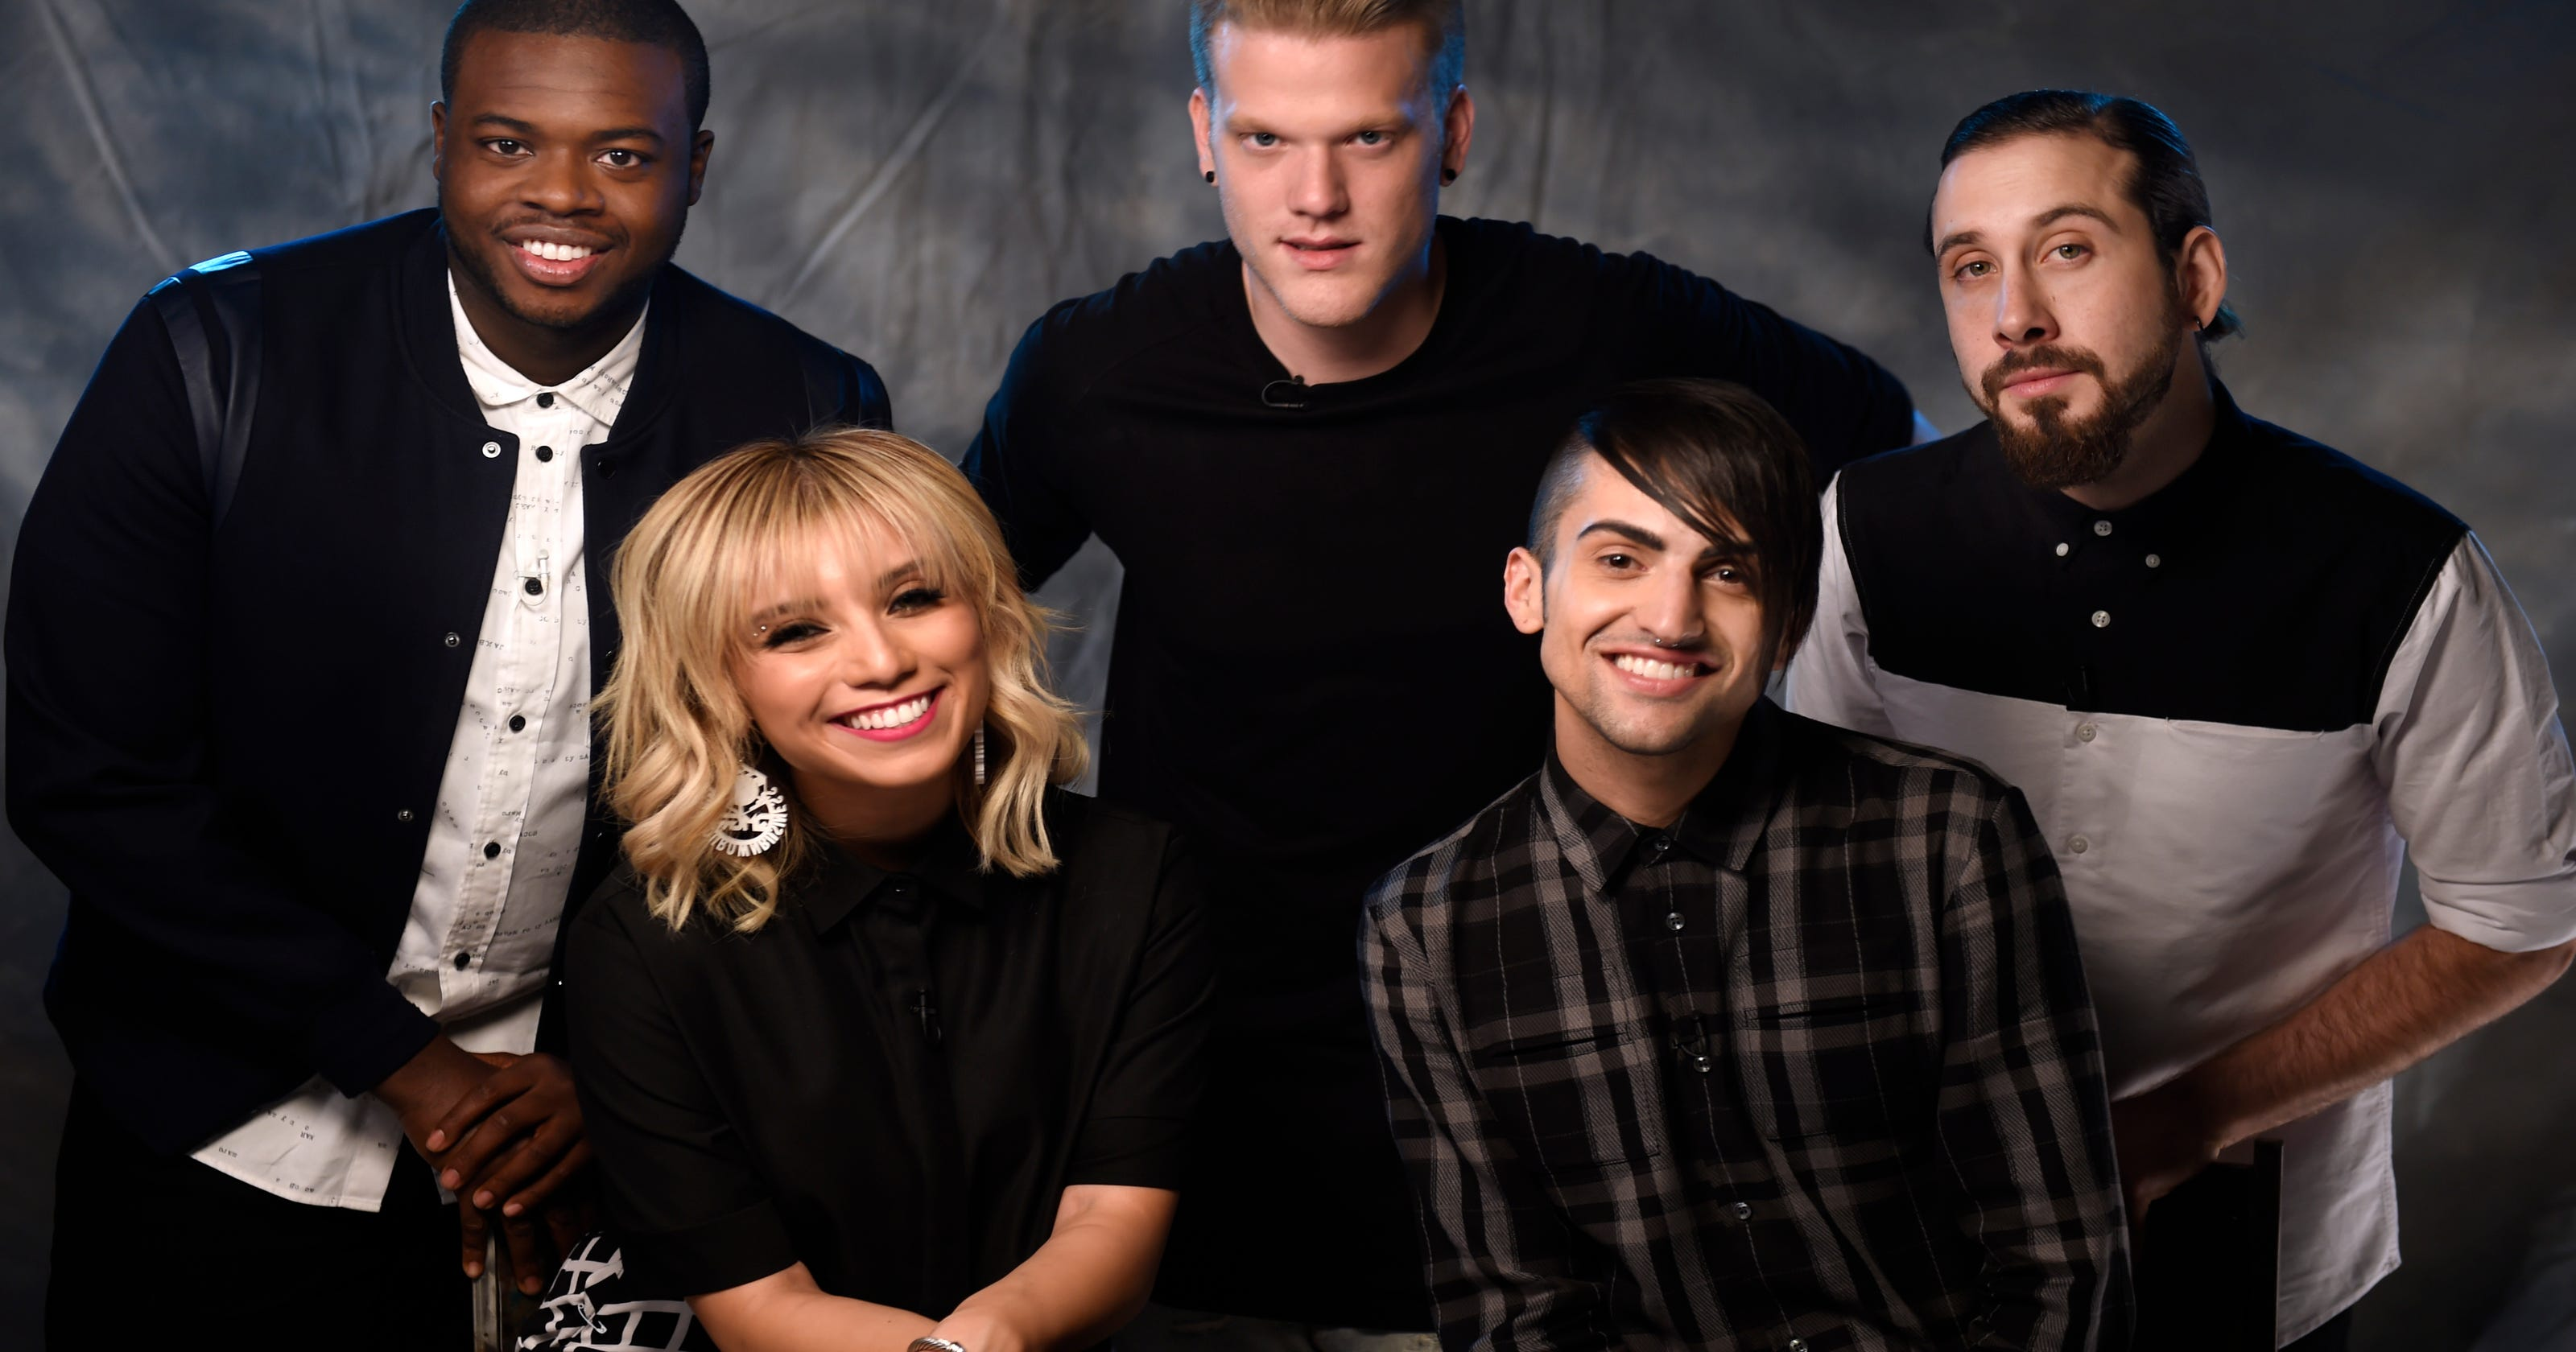 A cappella group Pentatonix to play UCF in April